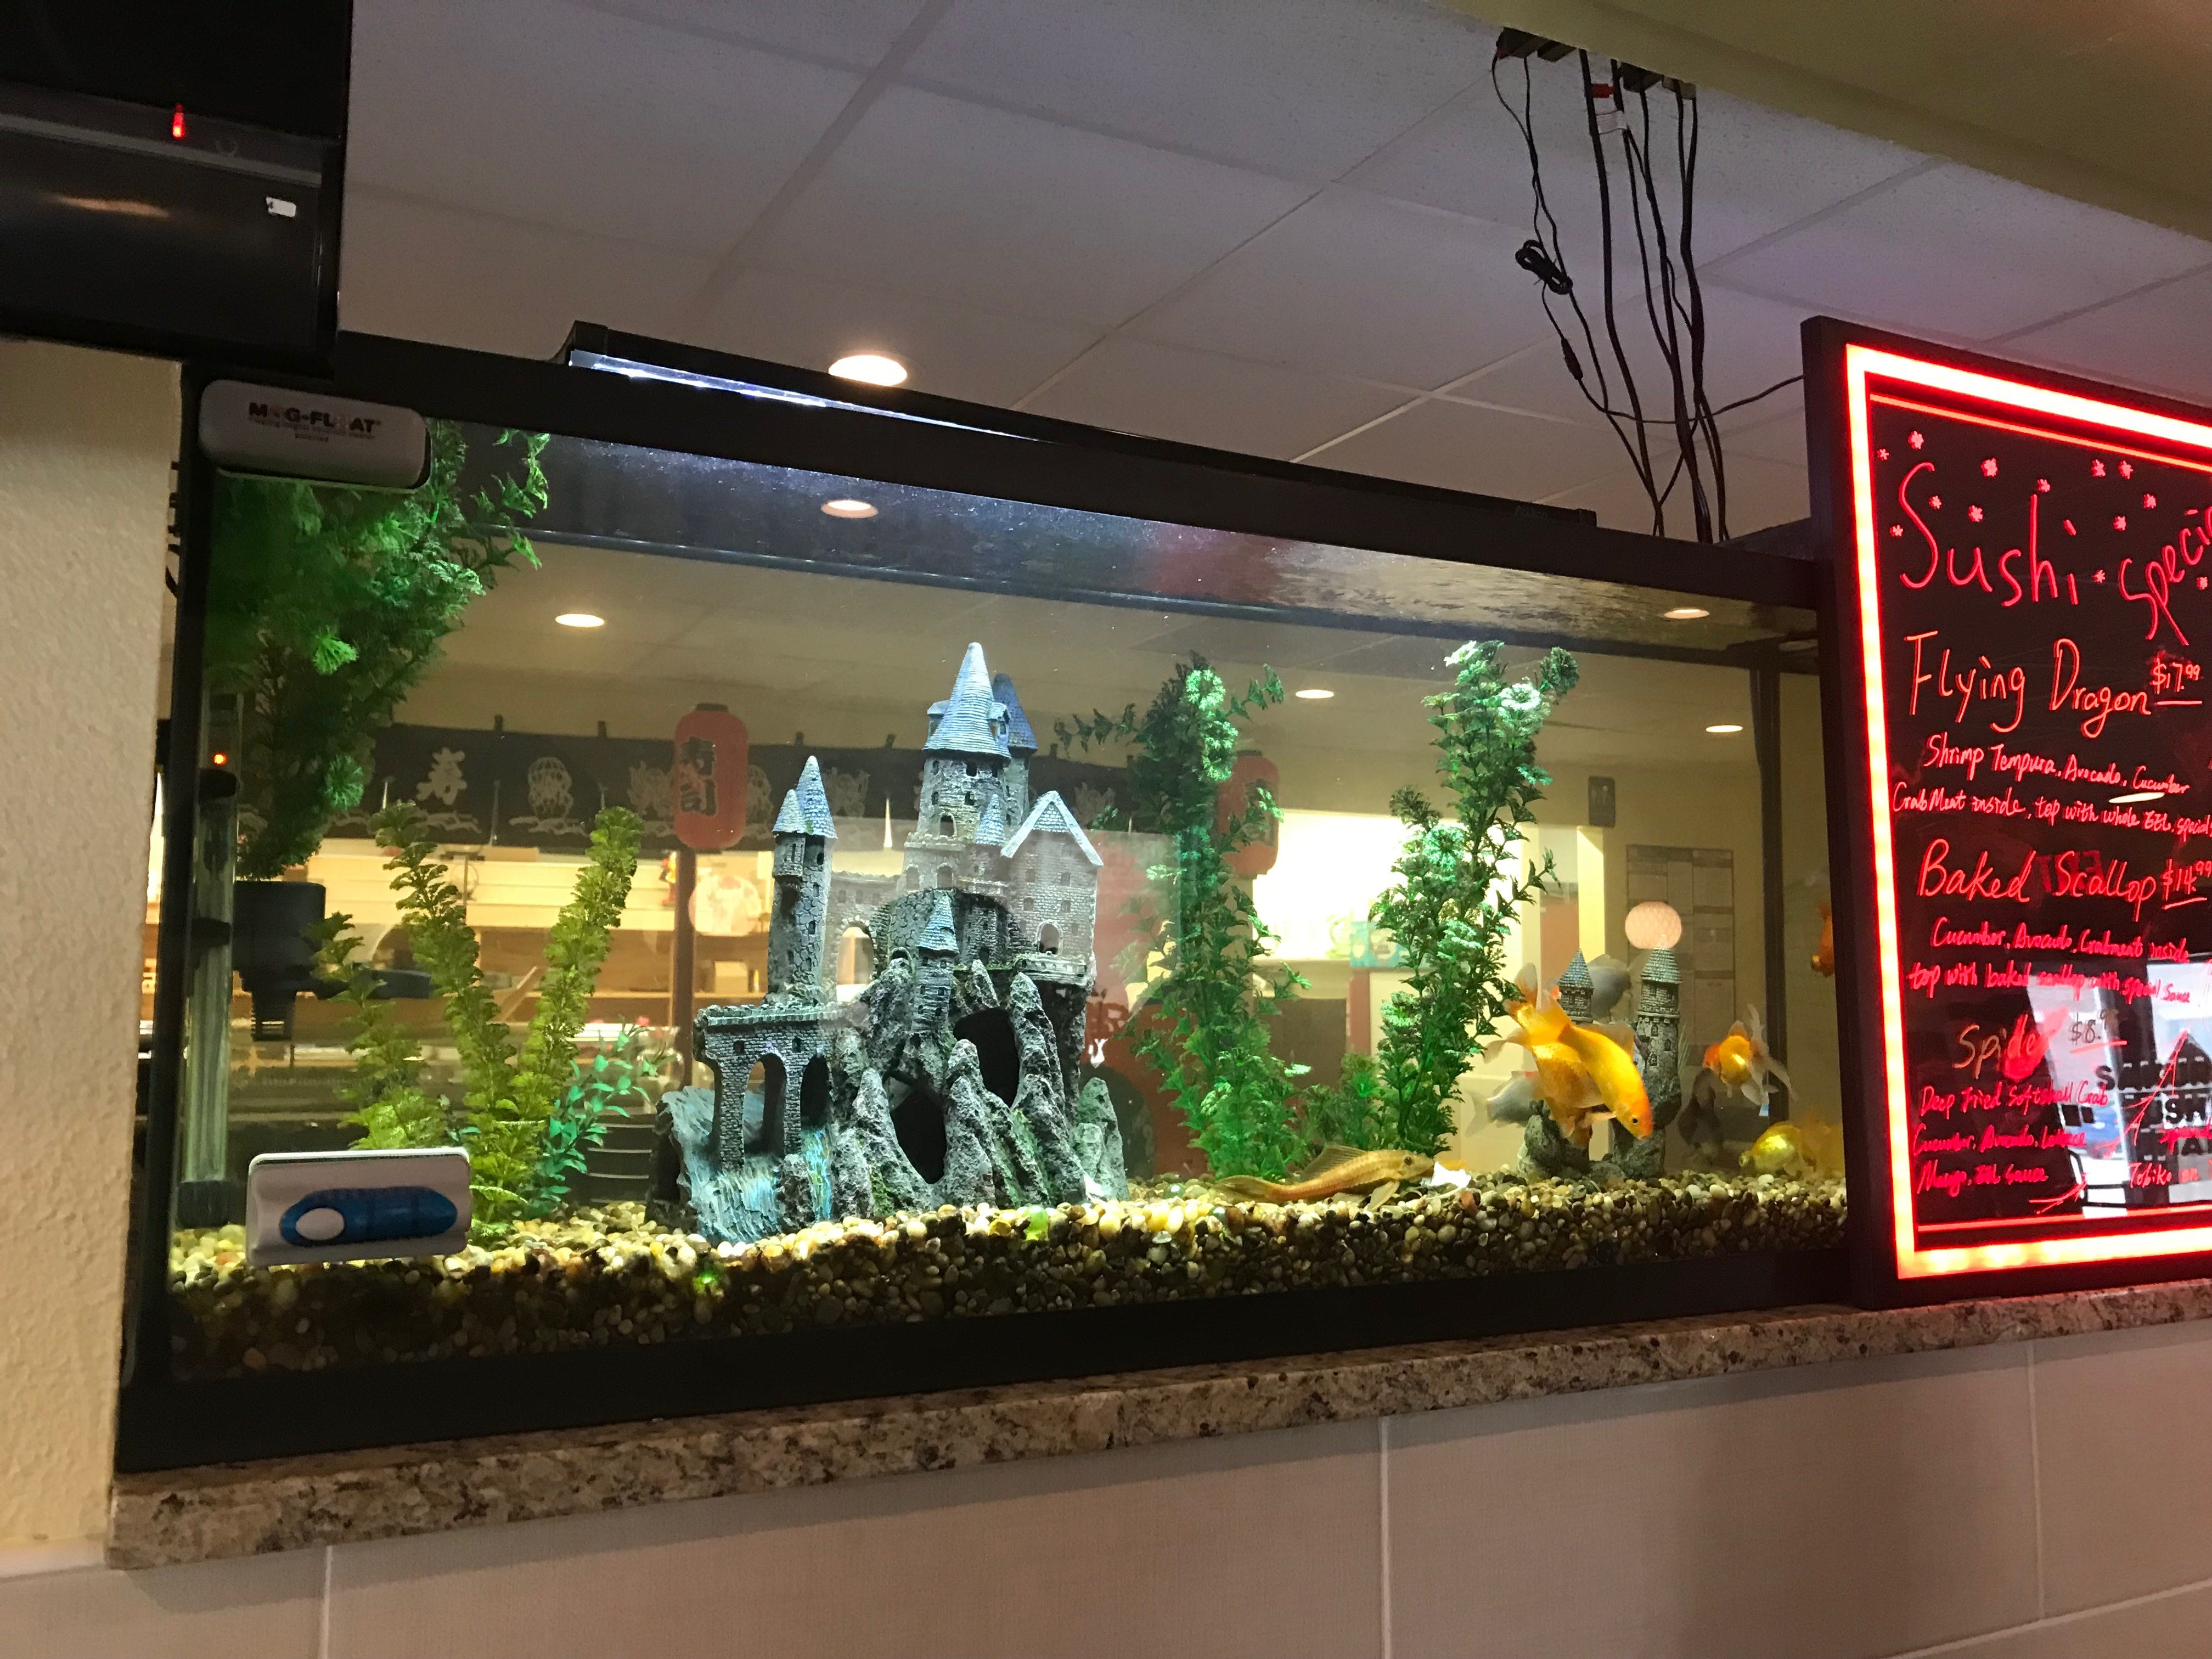 An interesting aquarium dominates the center wall at Sakura Sushi & Thai.